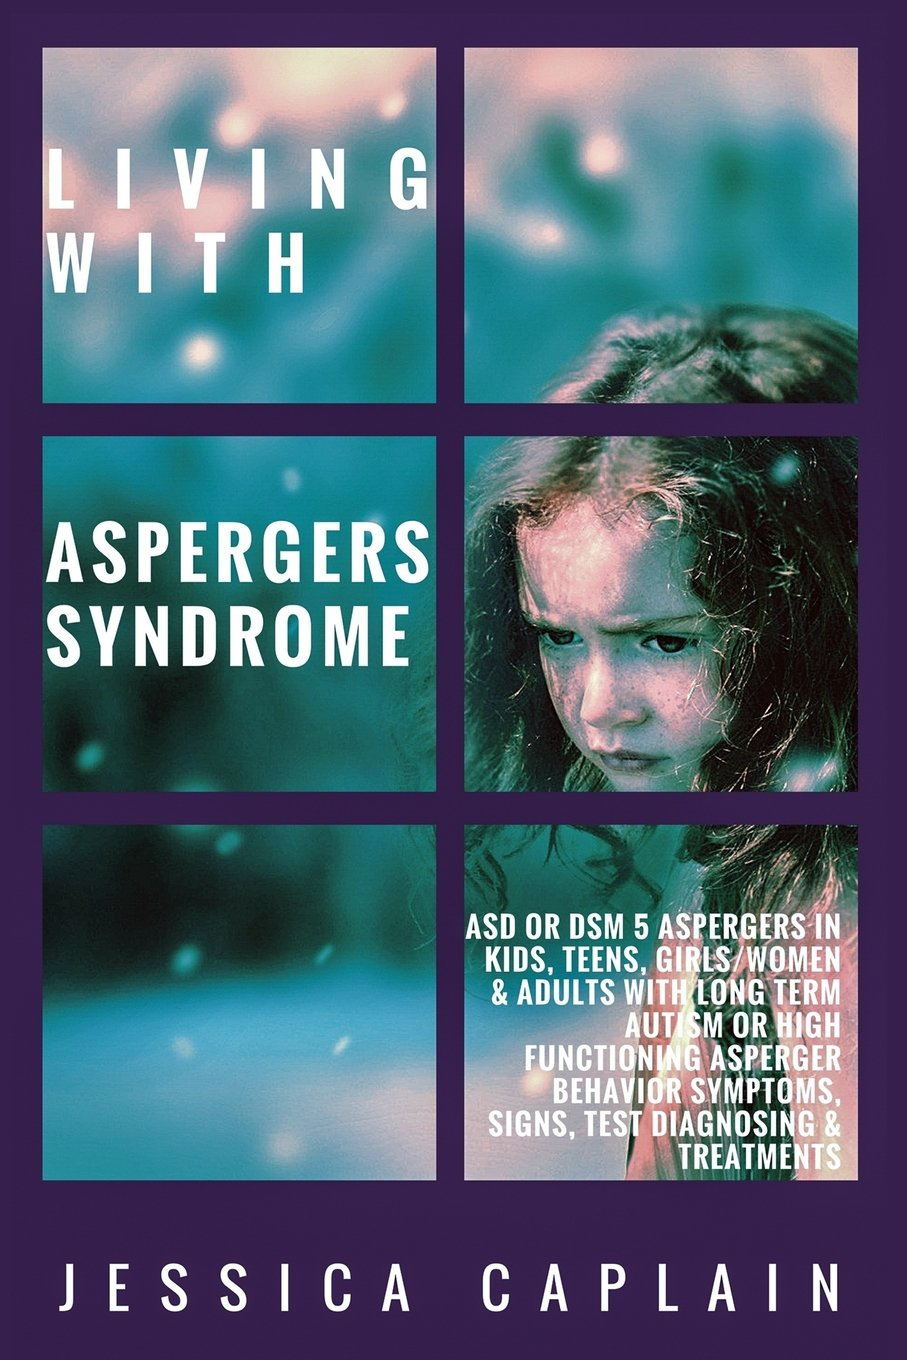 Living With Aspergers Syndrome: ASD or DSM 5 Aspergers in